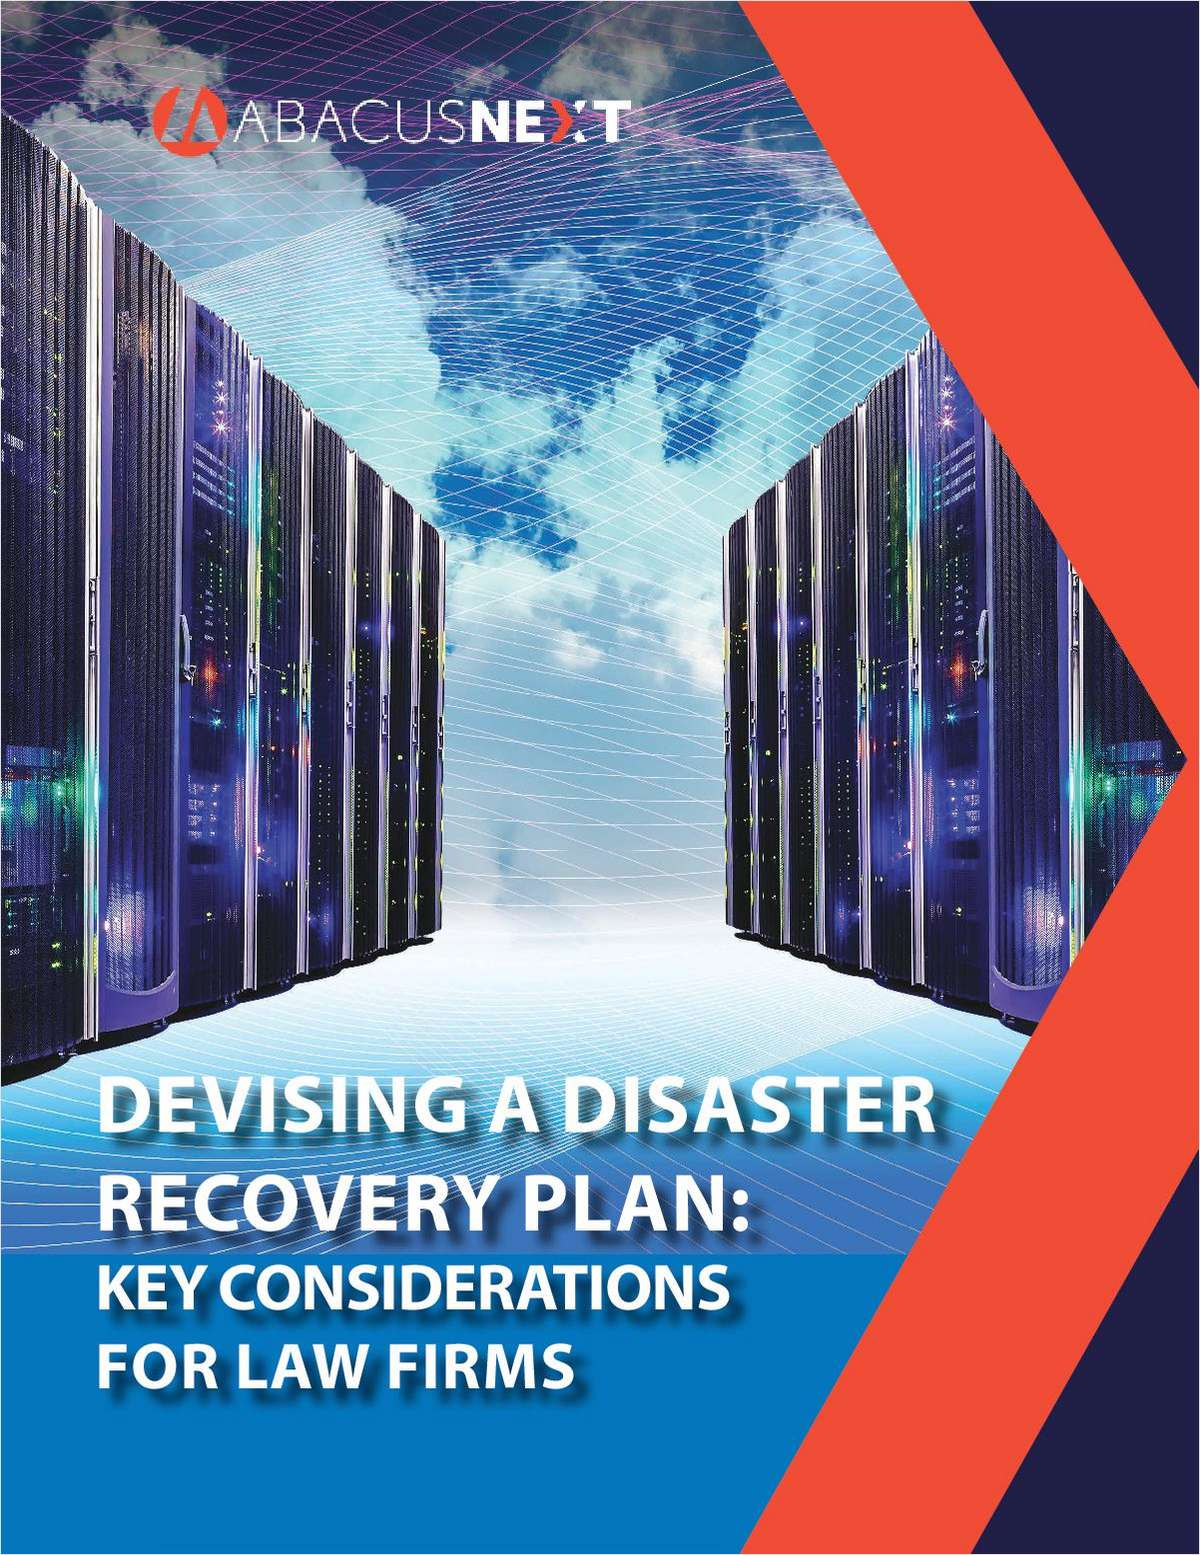 Devising a Disaster Recovery Plan: Key Considerations for Law Firms